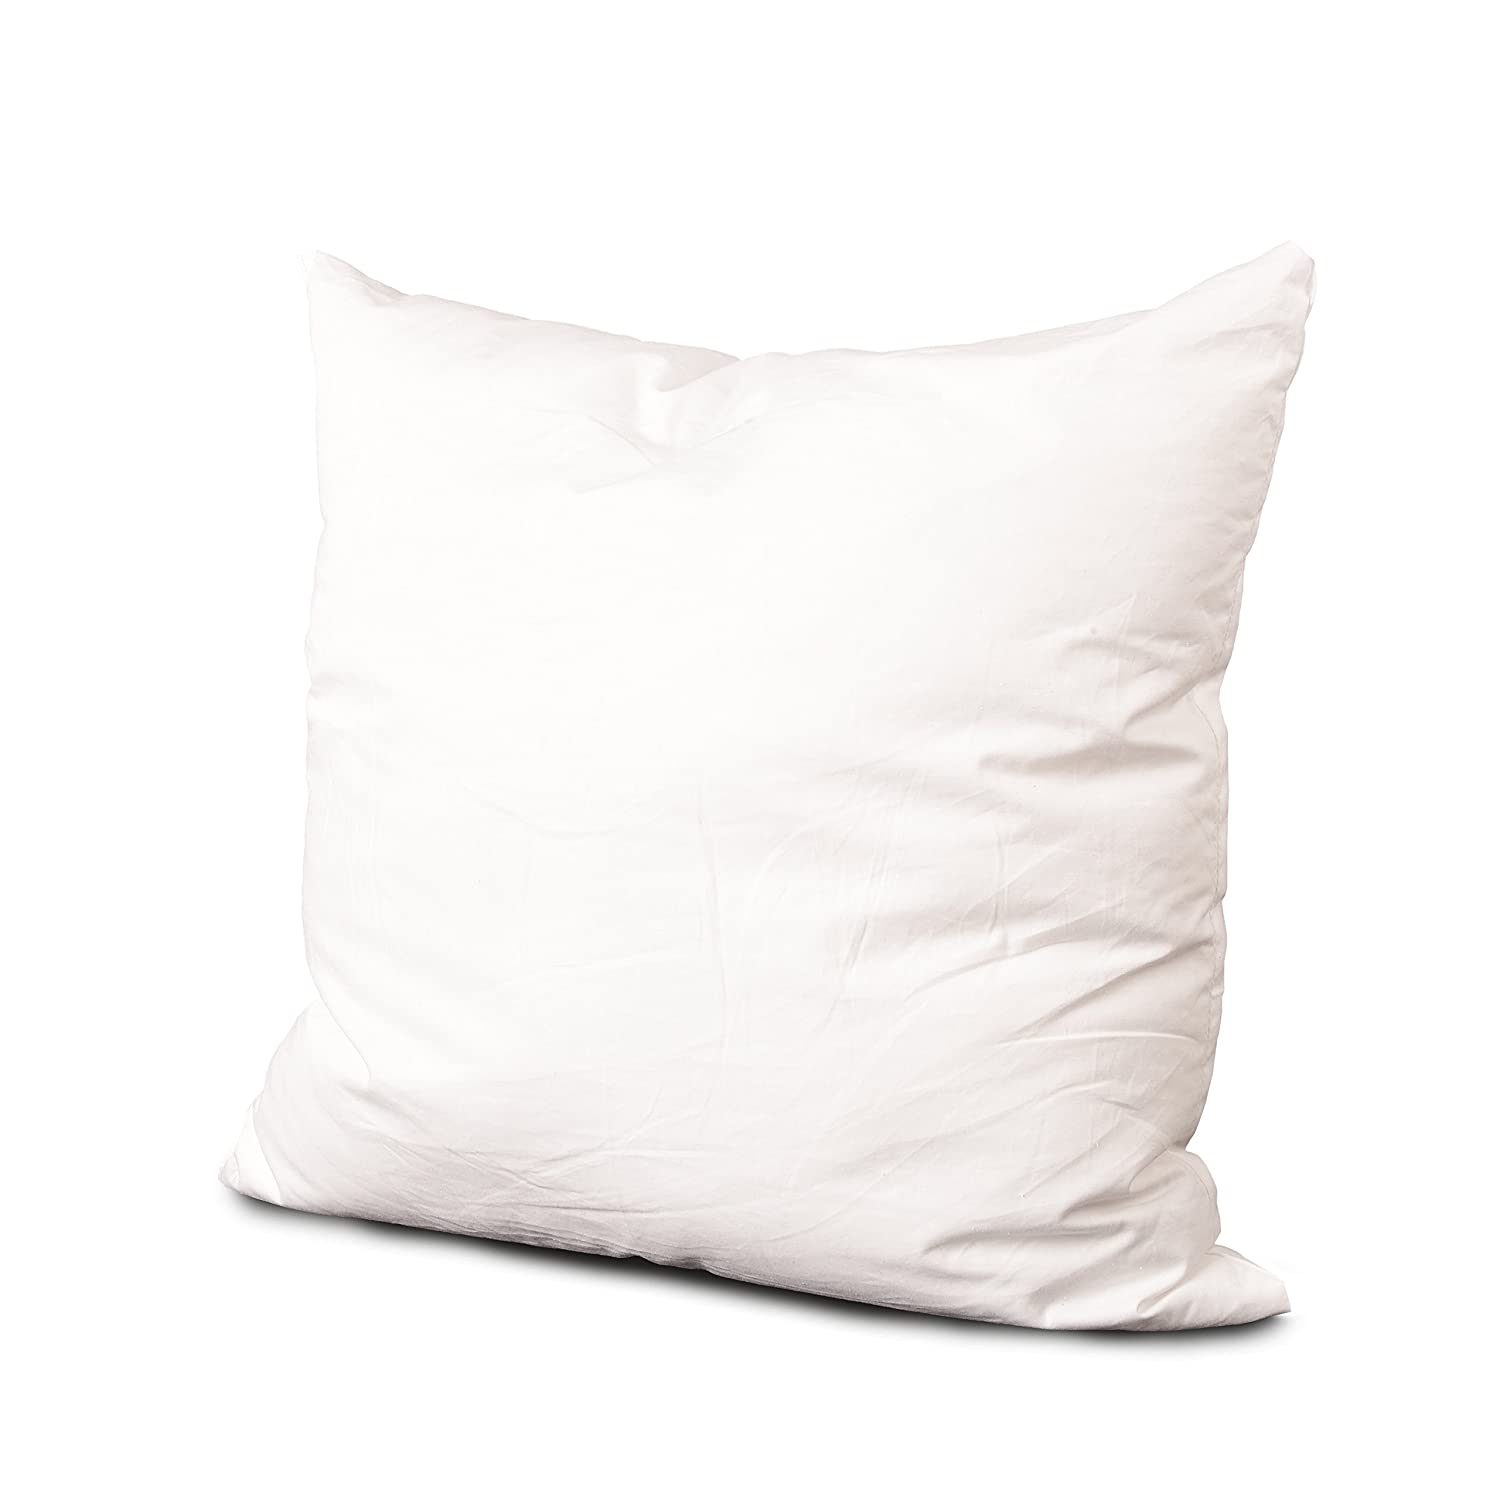 Edow Ultra Soft Decorative Pillow Insert, 10.5 Ounce Lightweight Polyester Down Alternative Square Form Throw Pillow, Sham Stuffer, Machine Washable, Cotton Cover,18 x 18 inches.